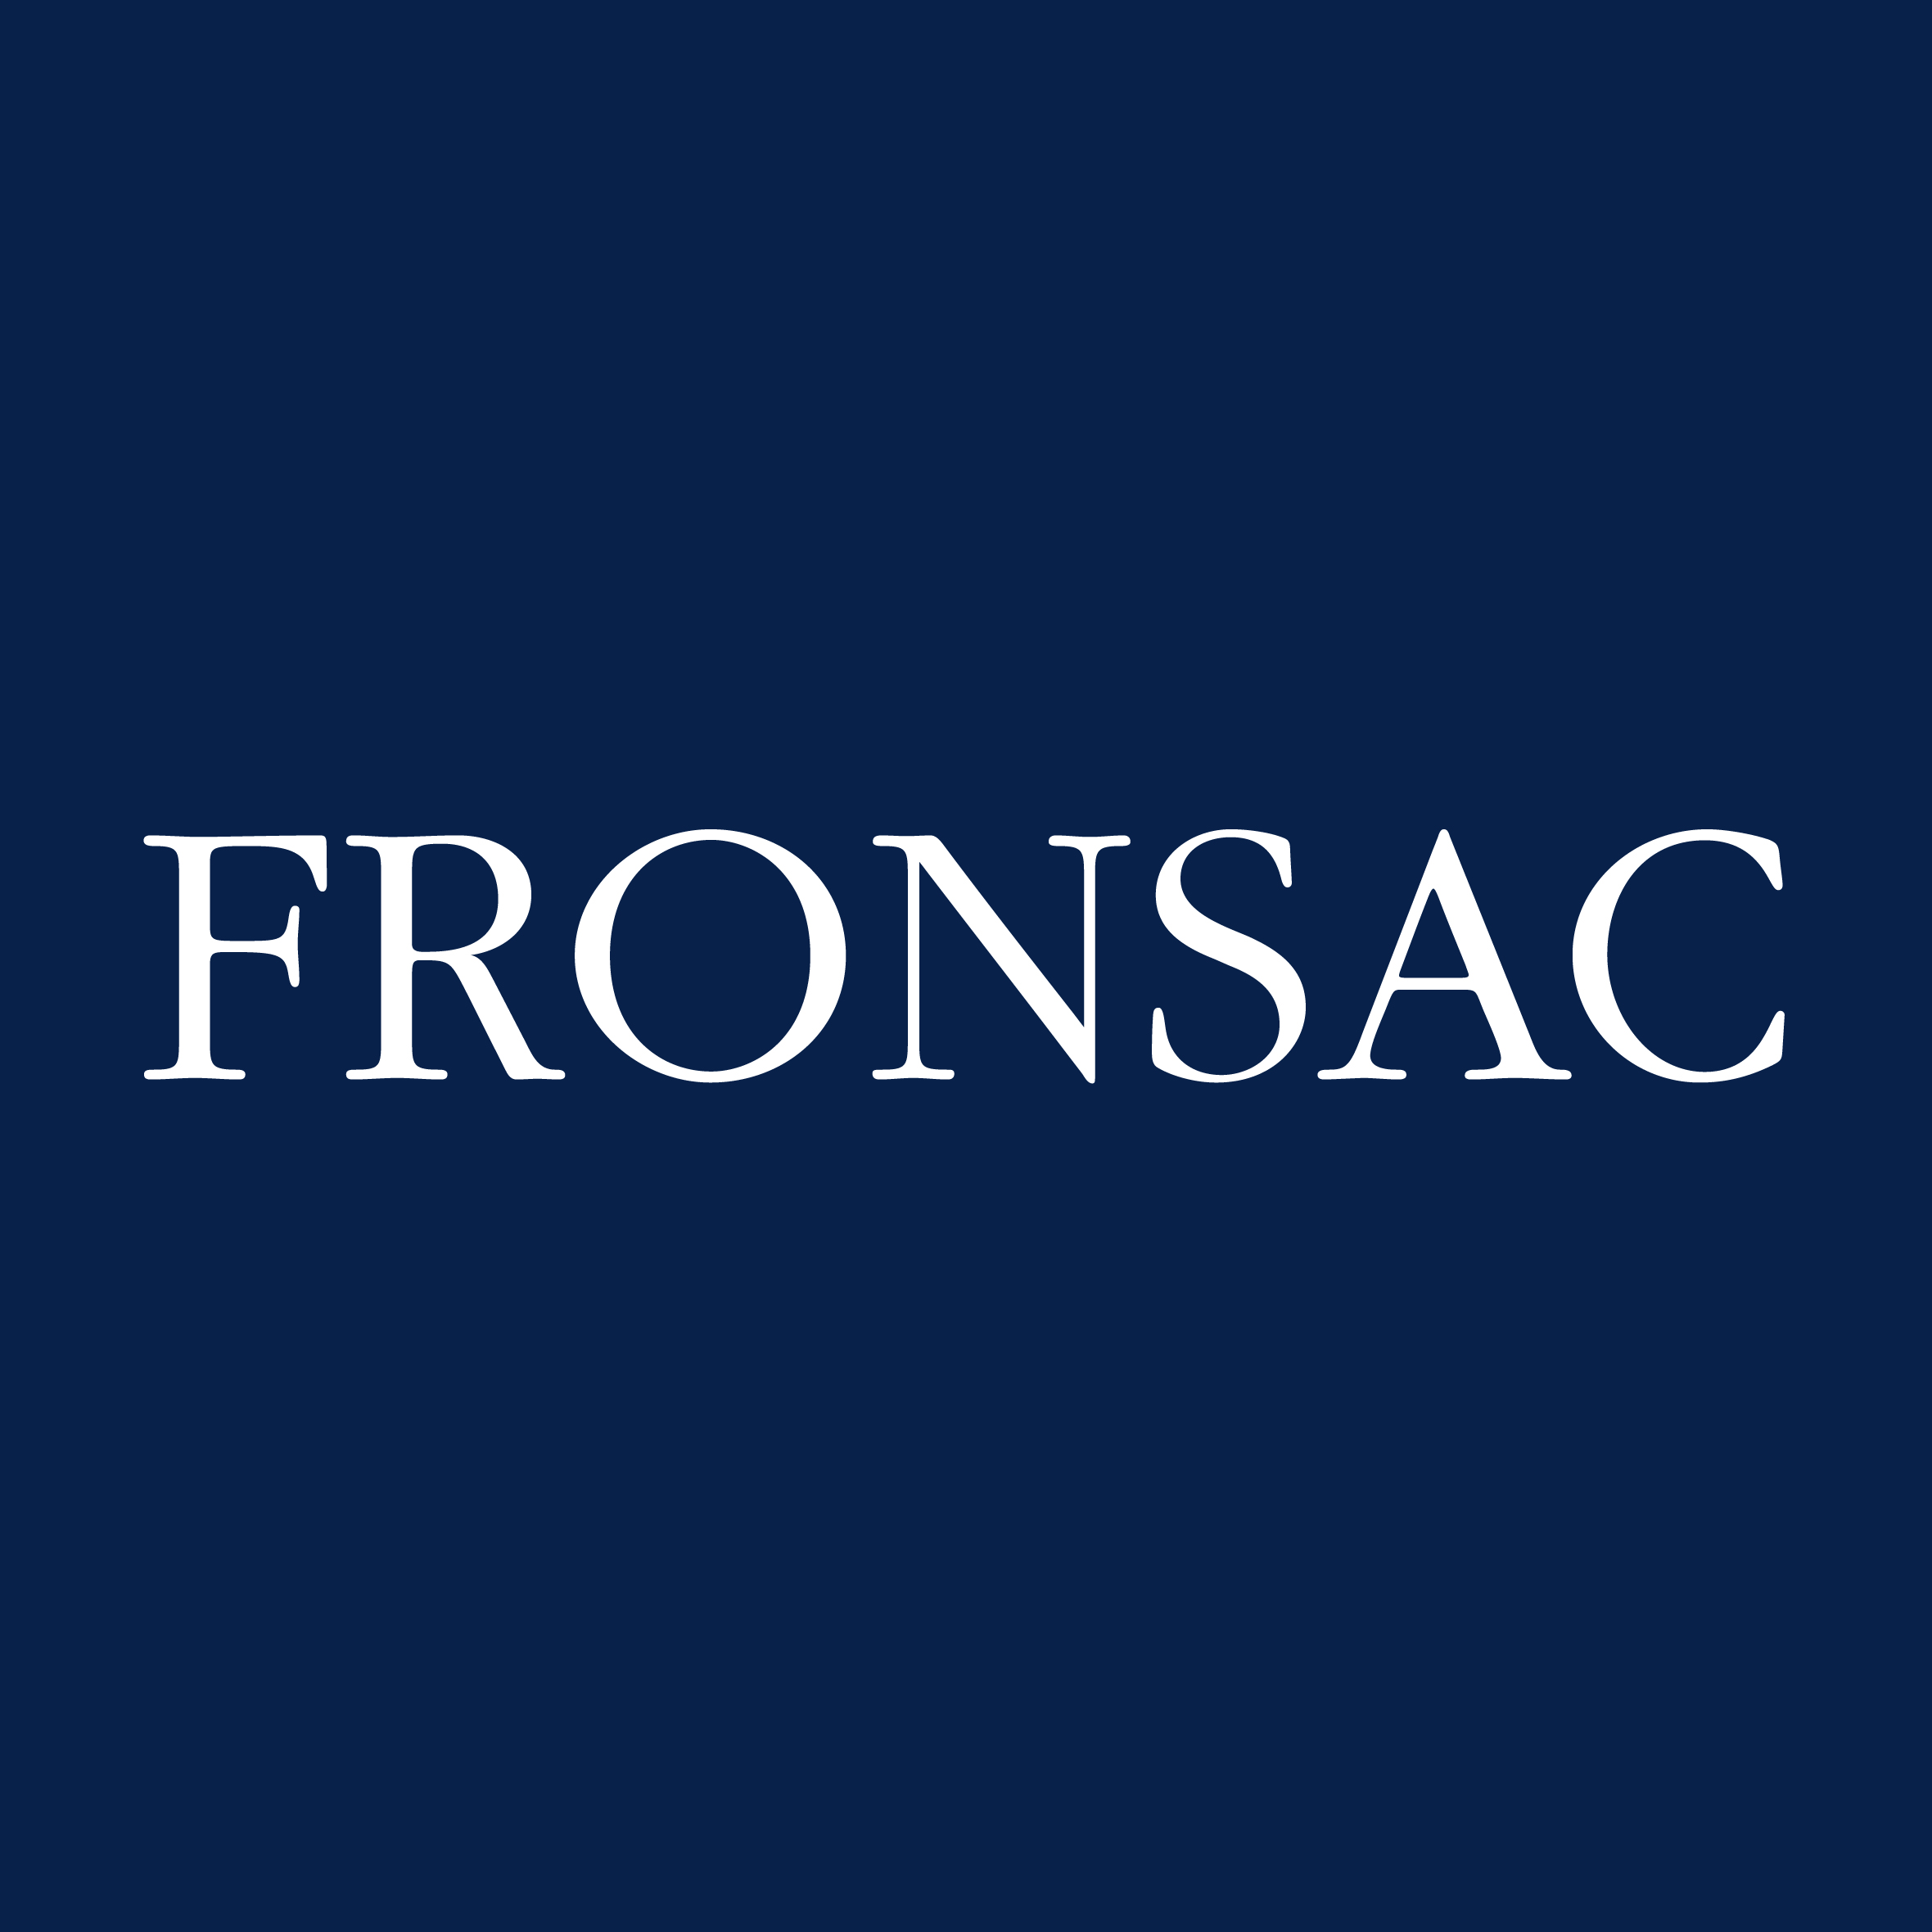 Fronsac Announces the Acquisition of a Property and a New Development